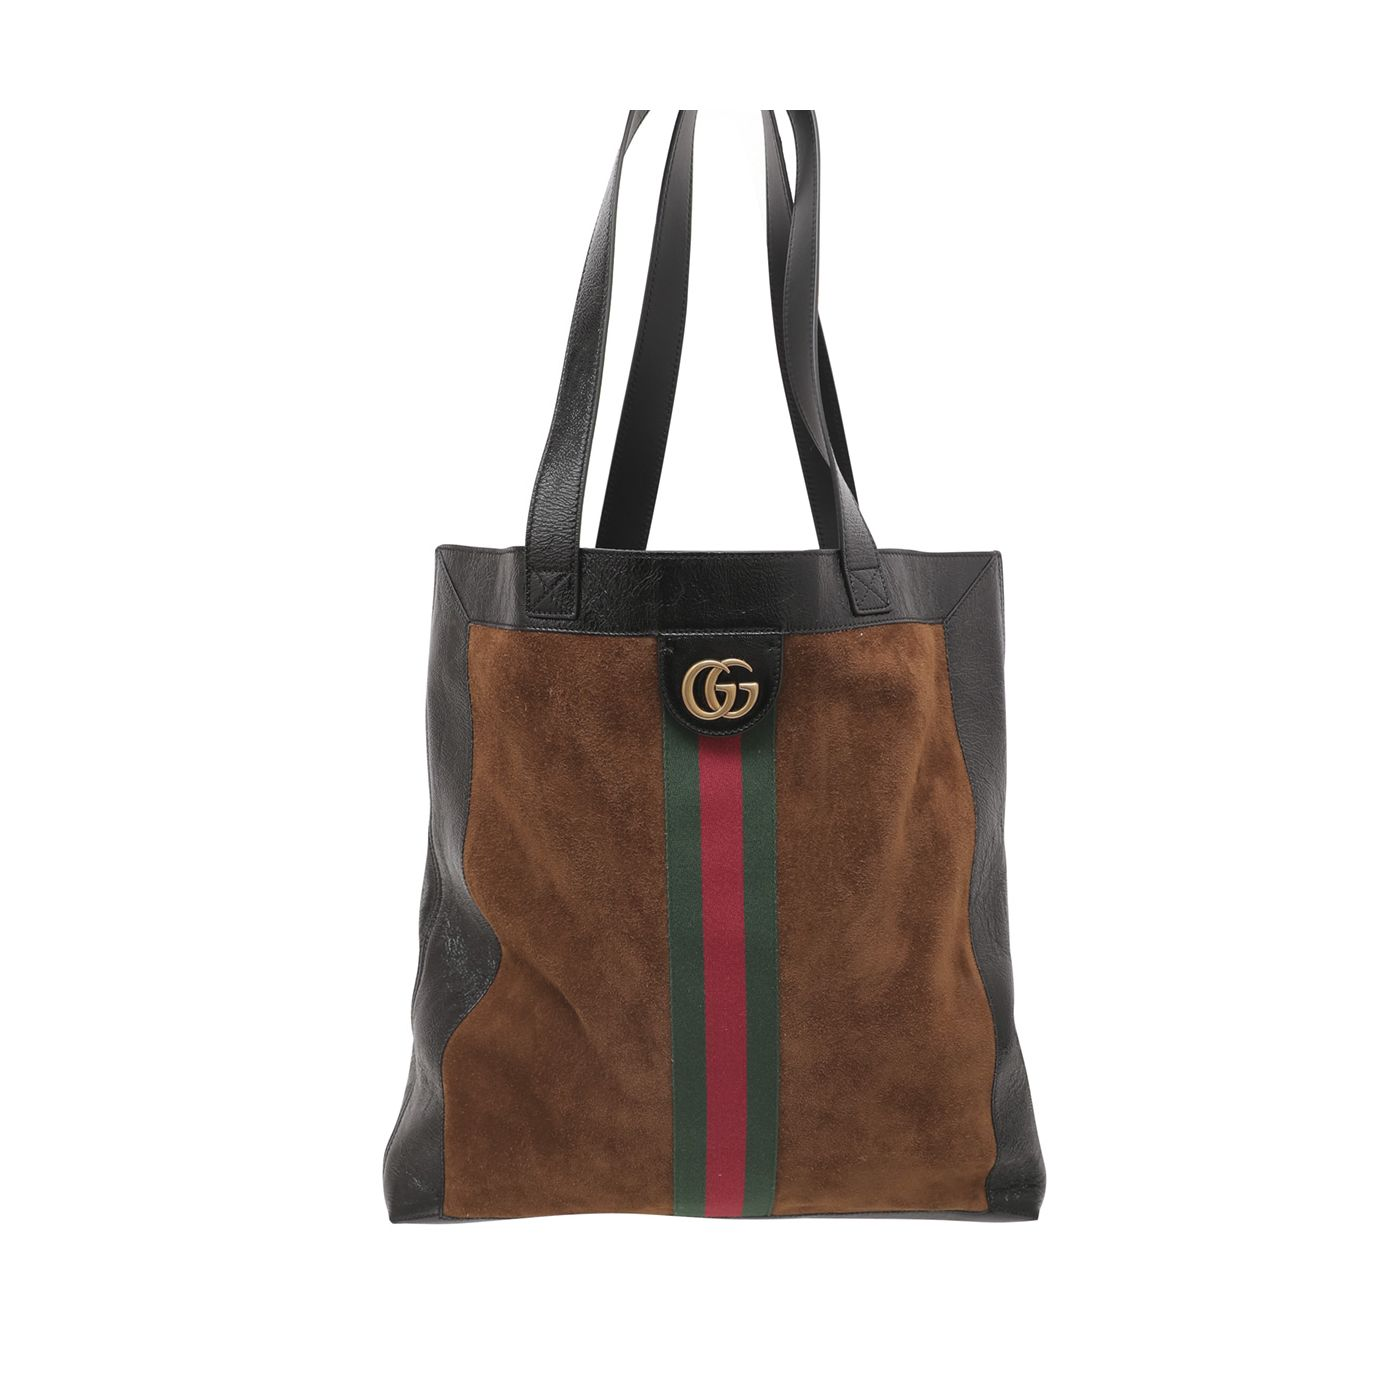 Gucci Bicolor Ophidia Vertical Shopping Tote Bag